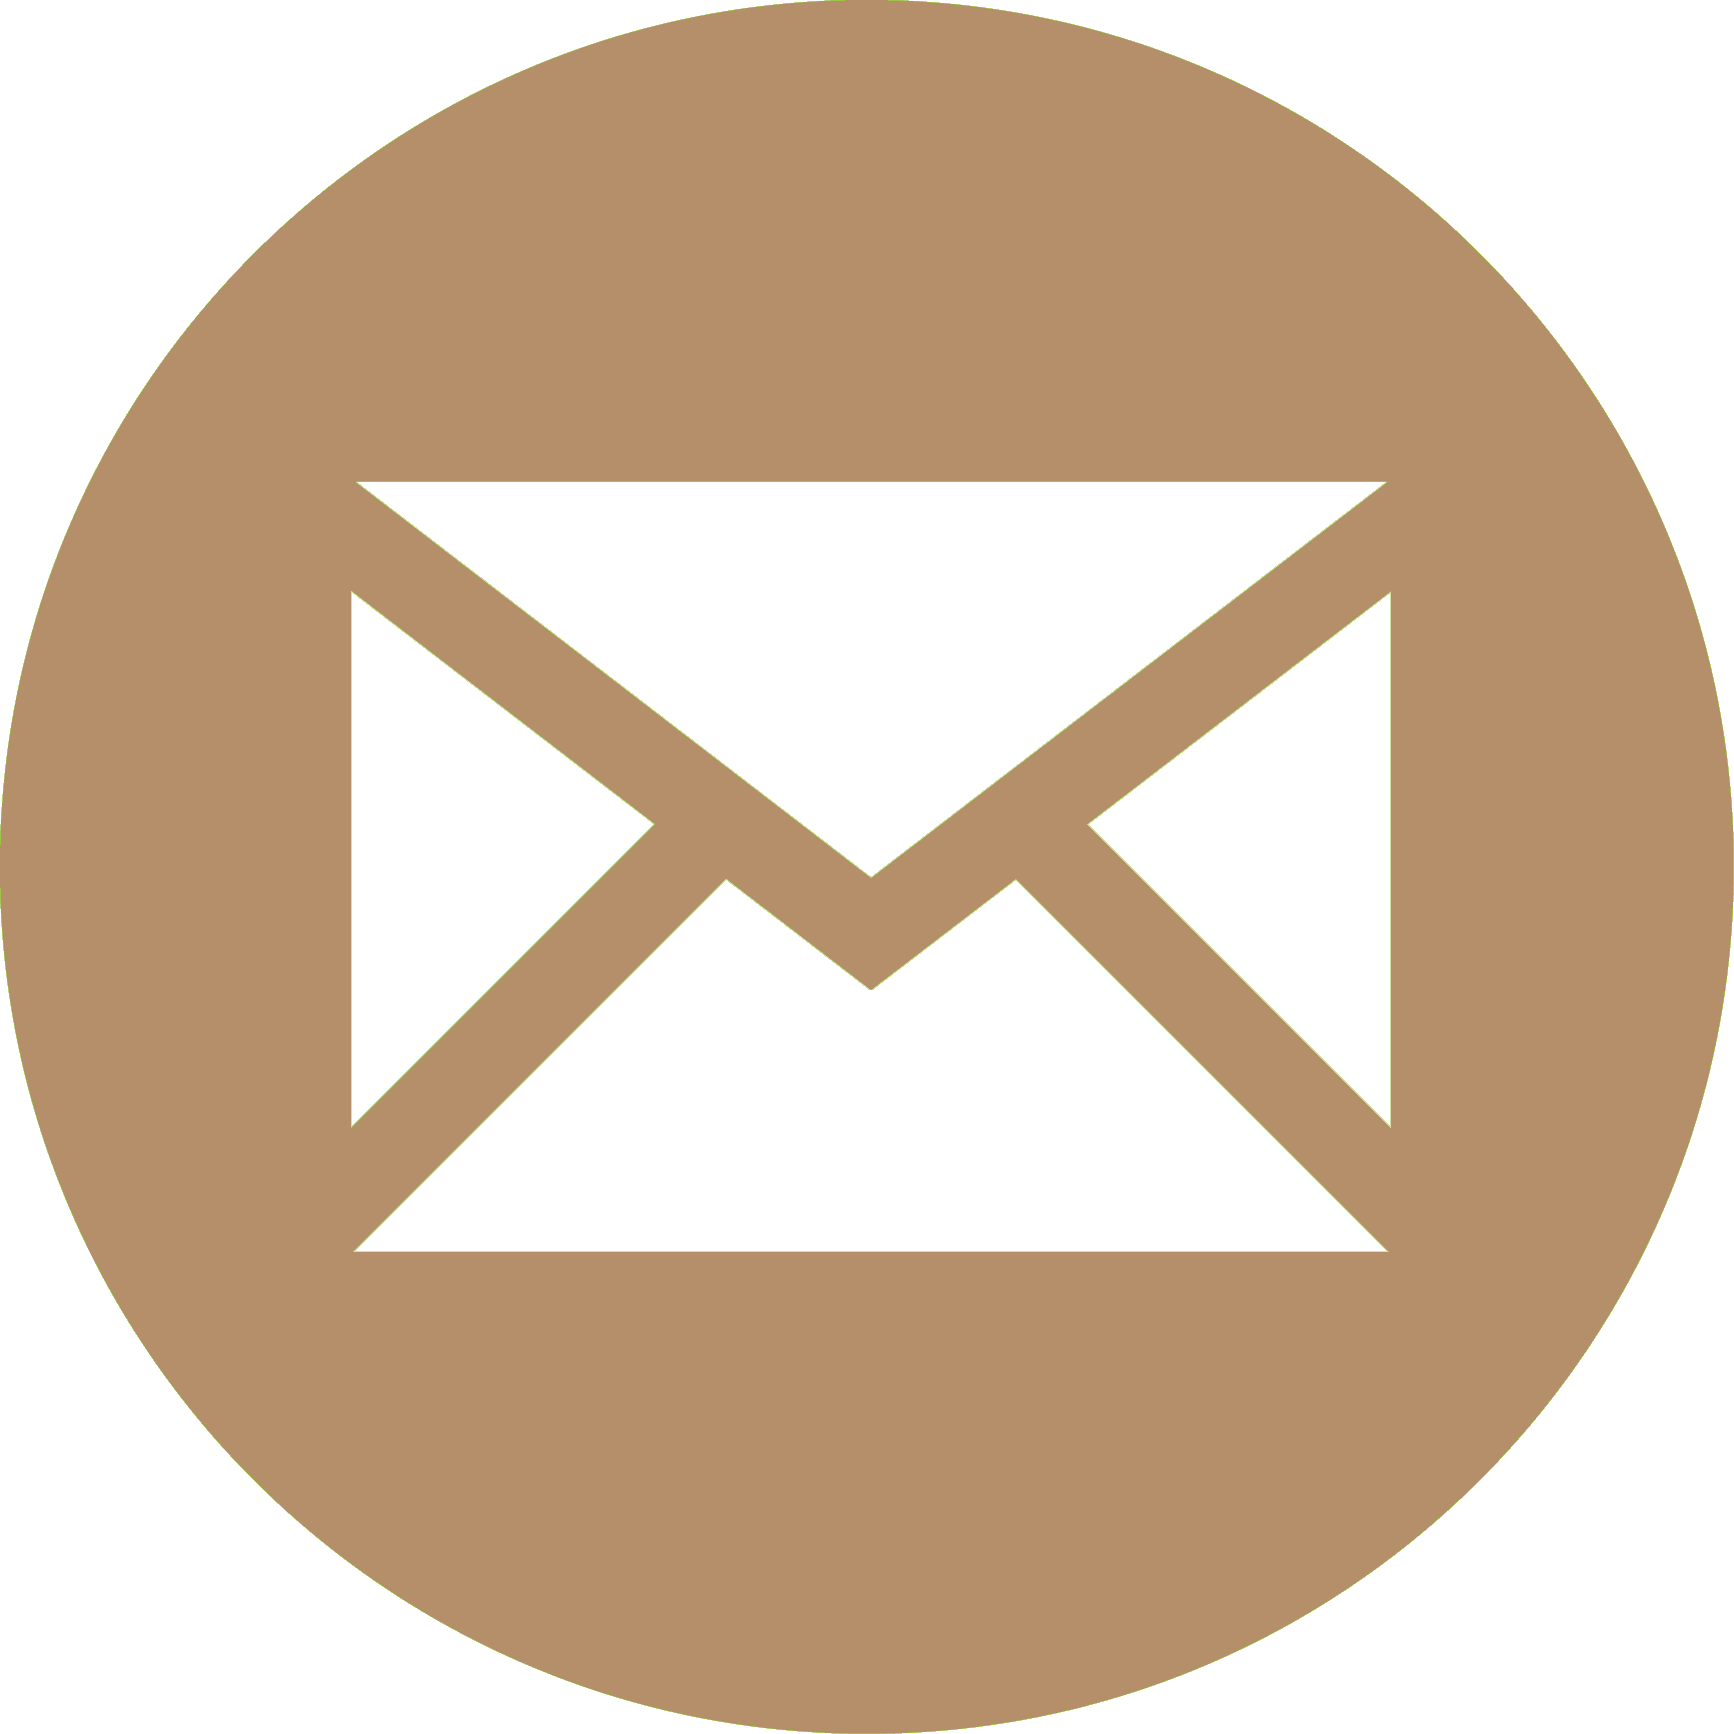 Download Free Symbol Computer Gmail Email Icons Free Photo PNG ICON favicon  | FreePNGImg